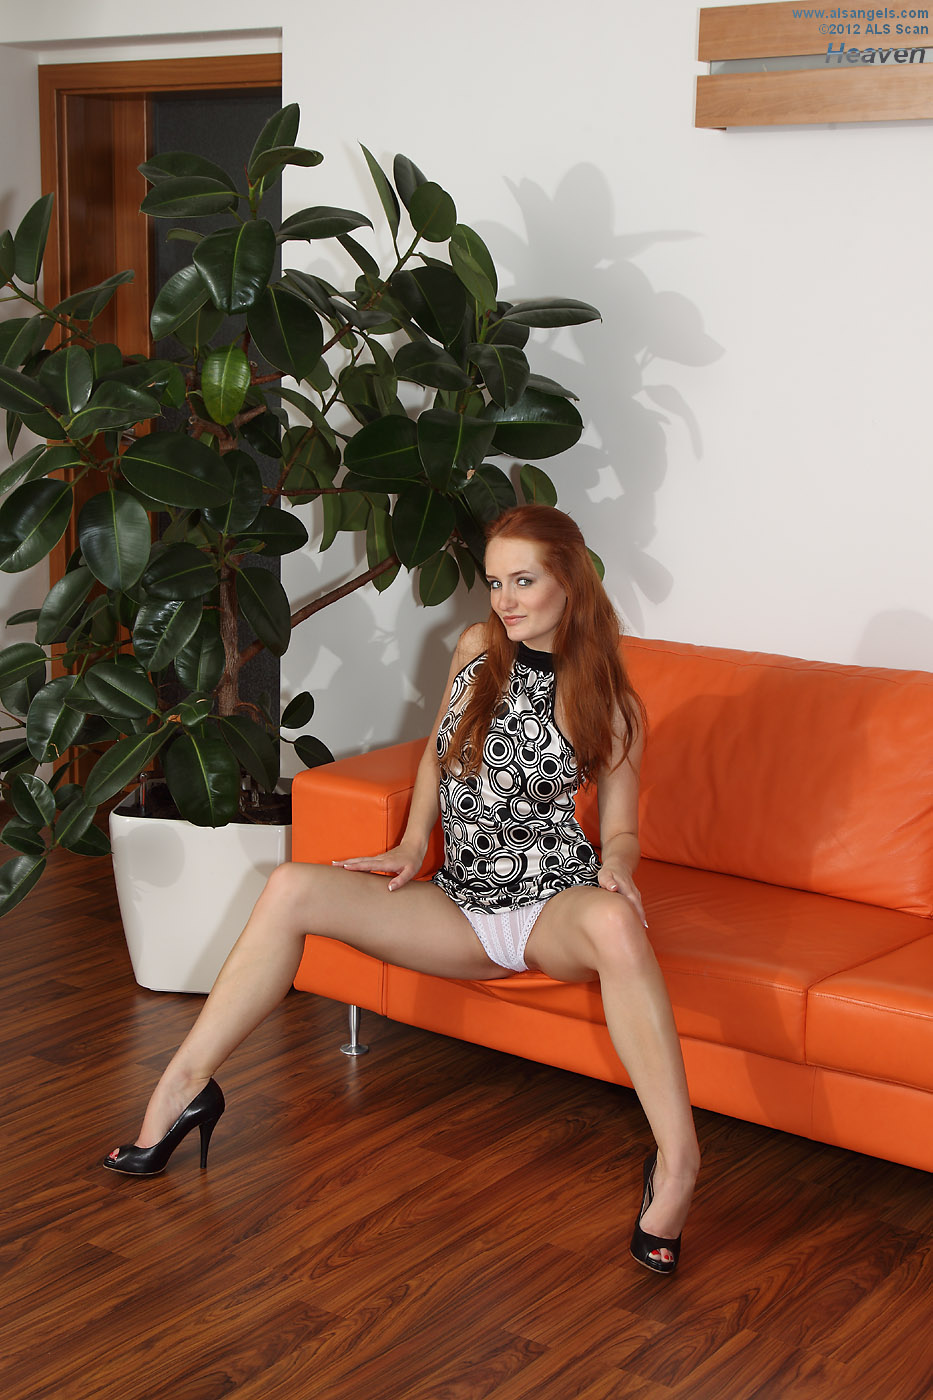 Heaven - Redhead Heaven Fists Herself On the Couch For Eufrat